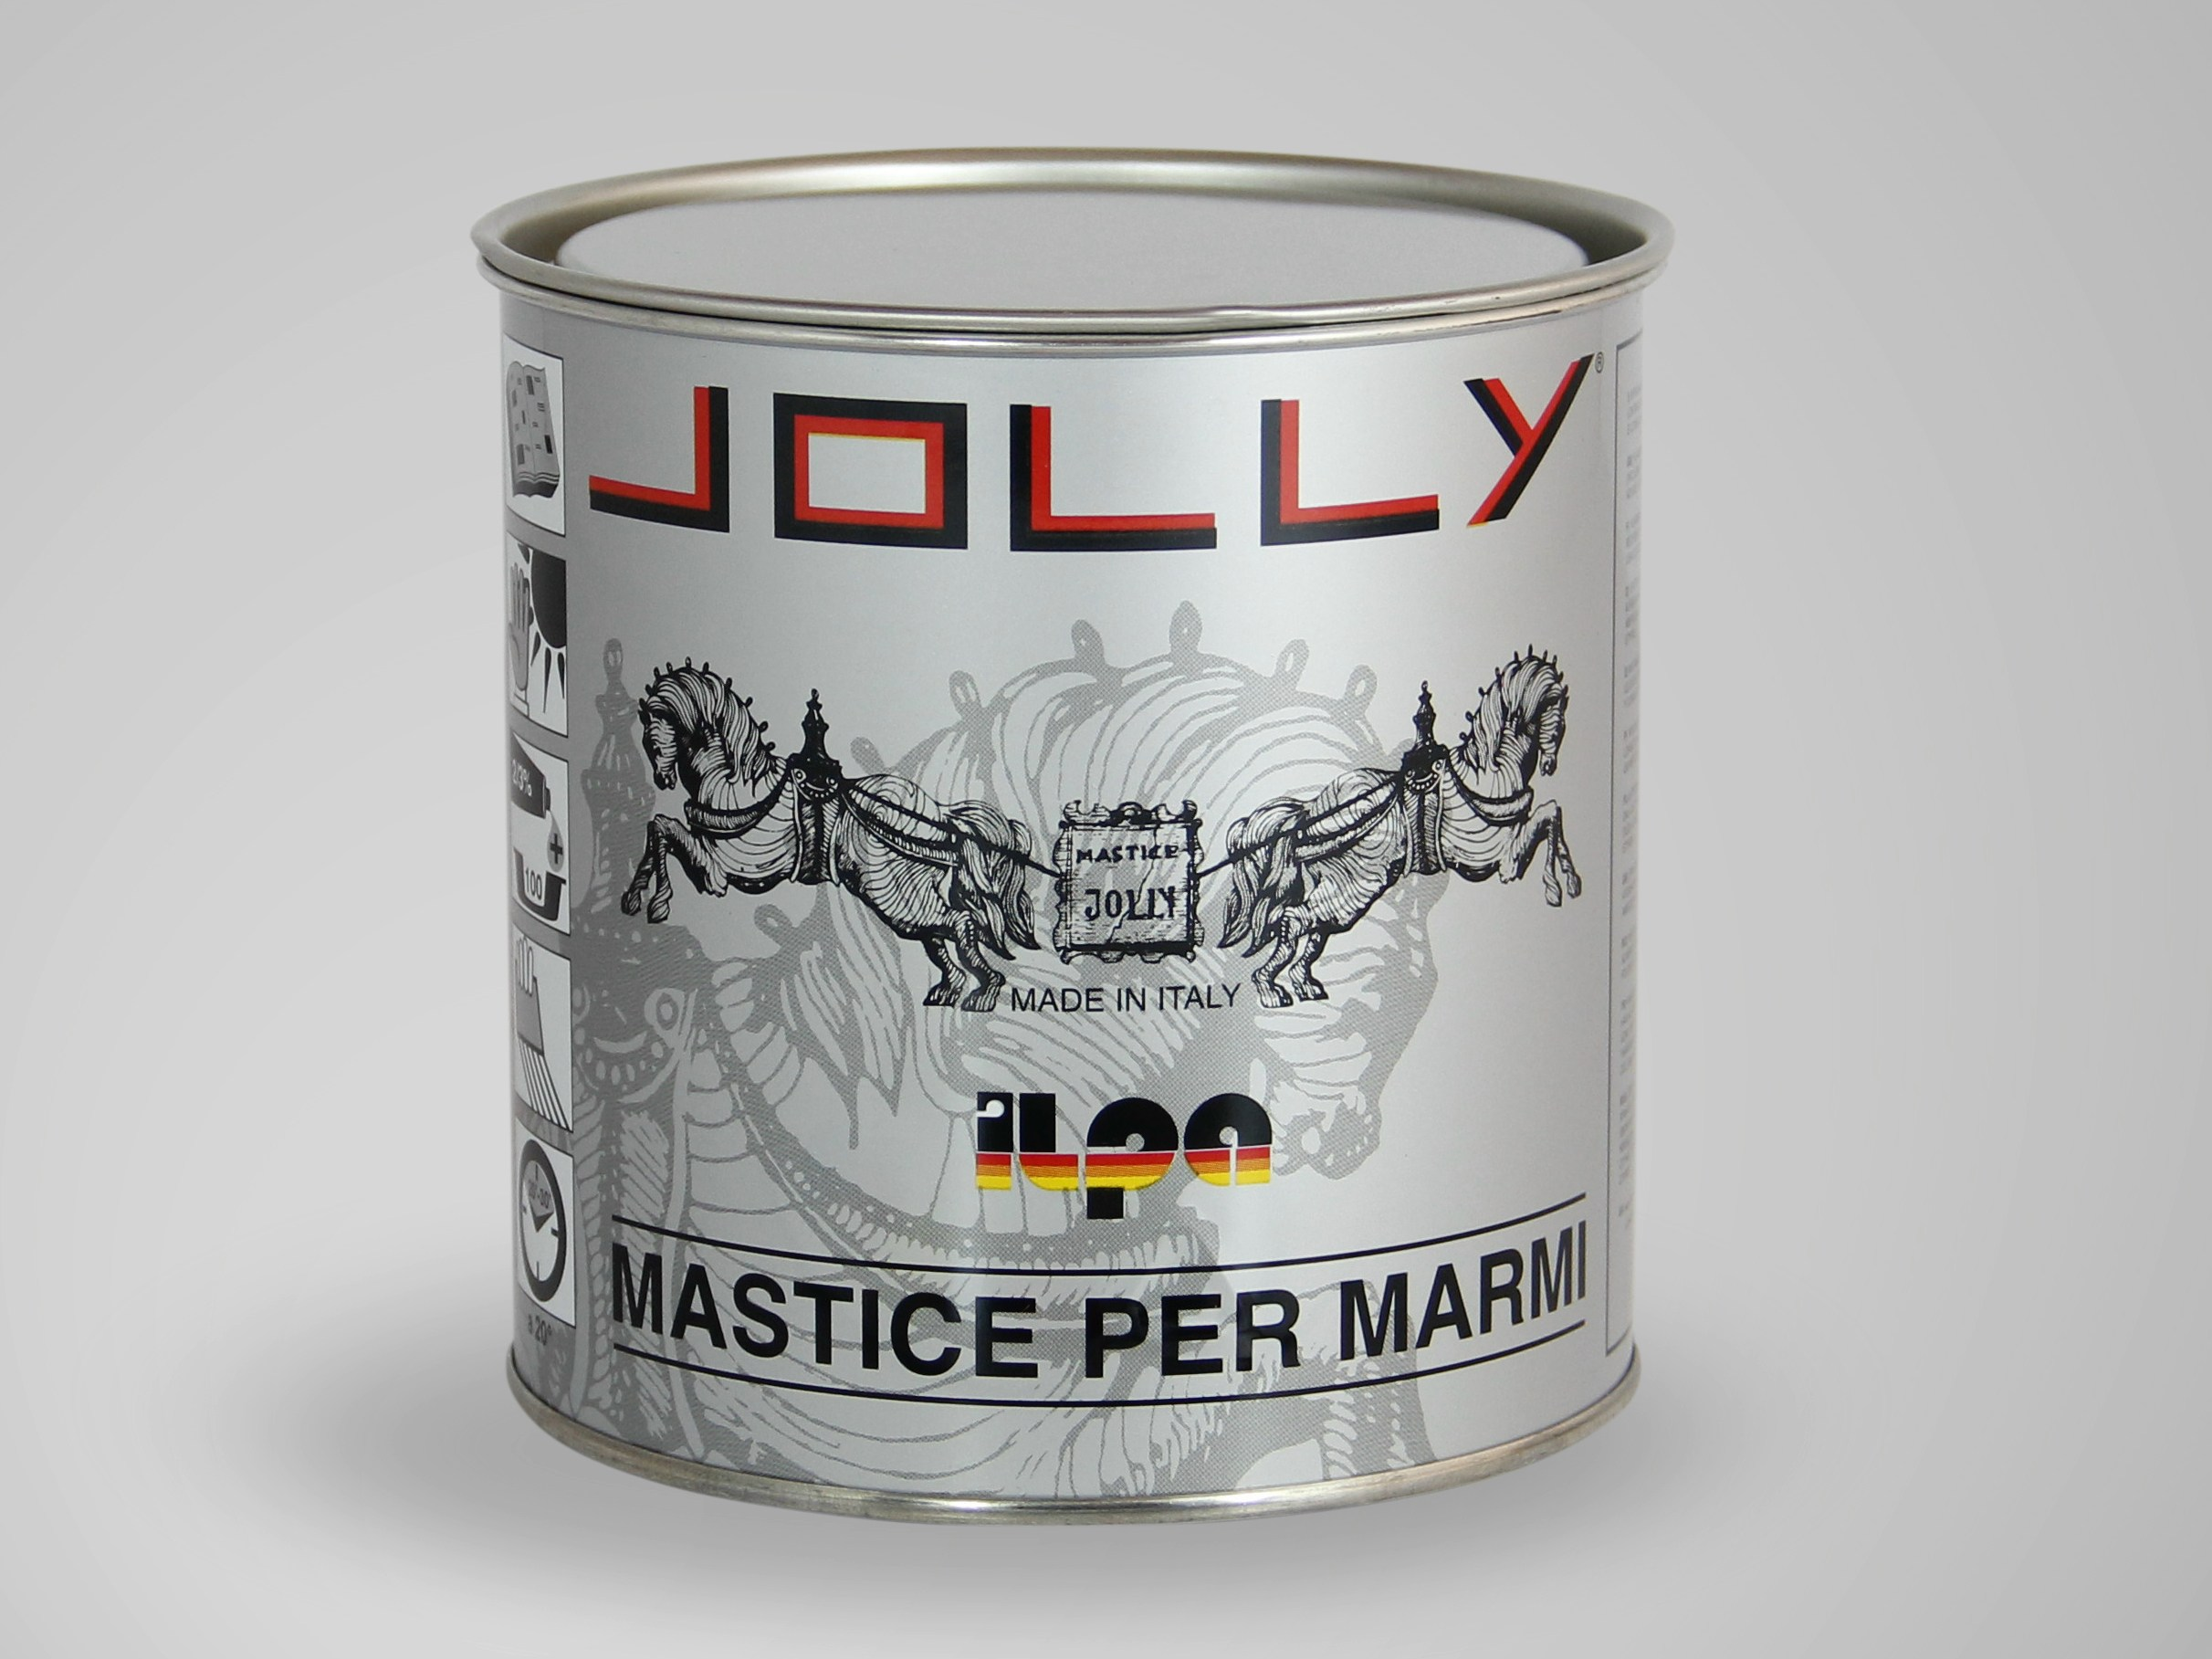 Mastic For Marble Jolly Jolly Line By Ilpa Adesivi